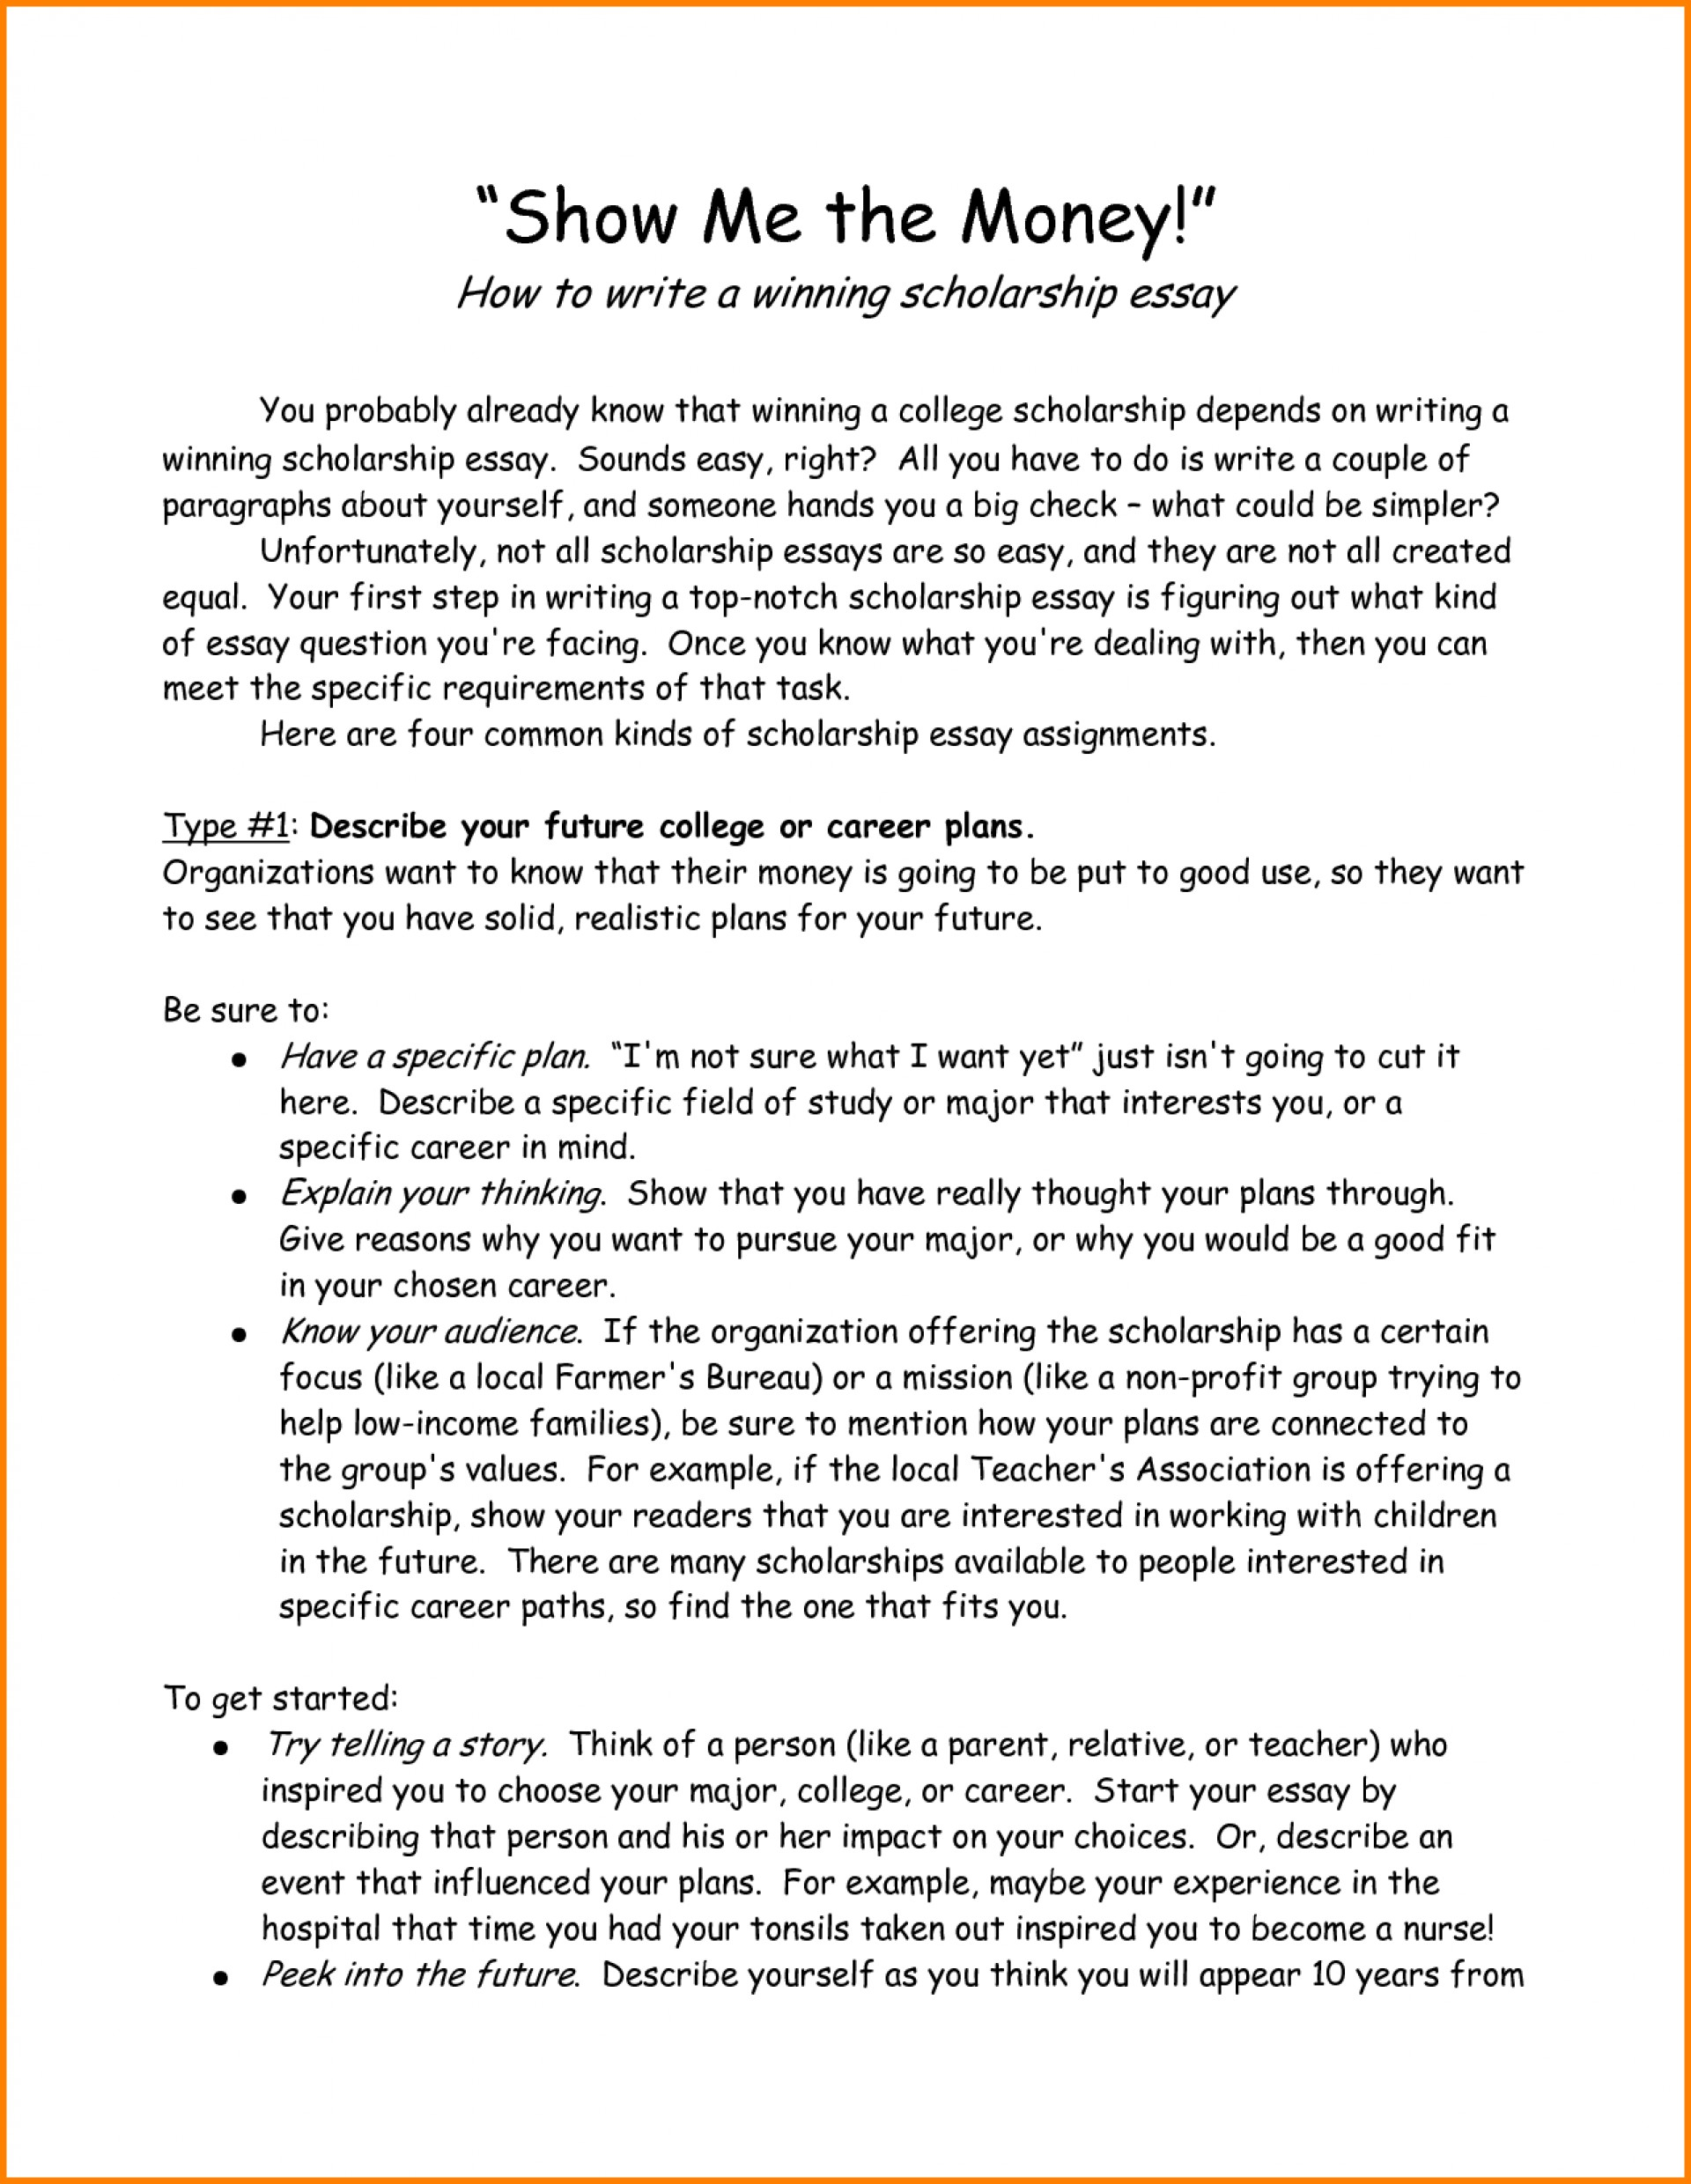 010 How To Start Scholarship Essay Letter Template Word Best Way Write College L Begin An Incredible On A Book You Didn't Read Open Paragraph About Yourself For 1920